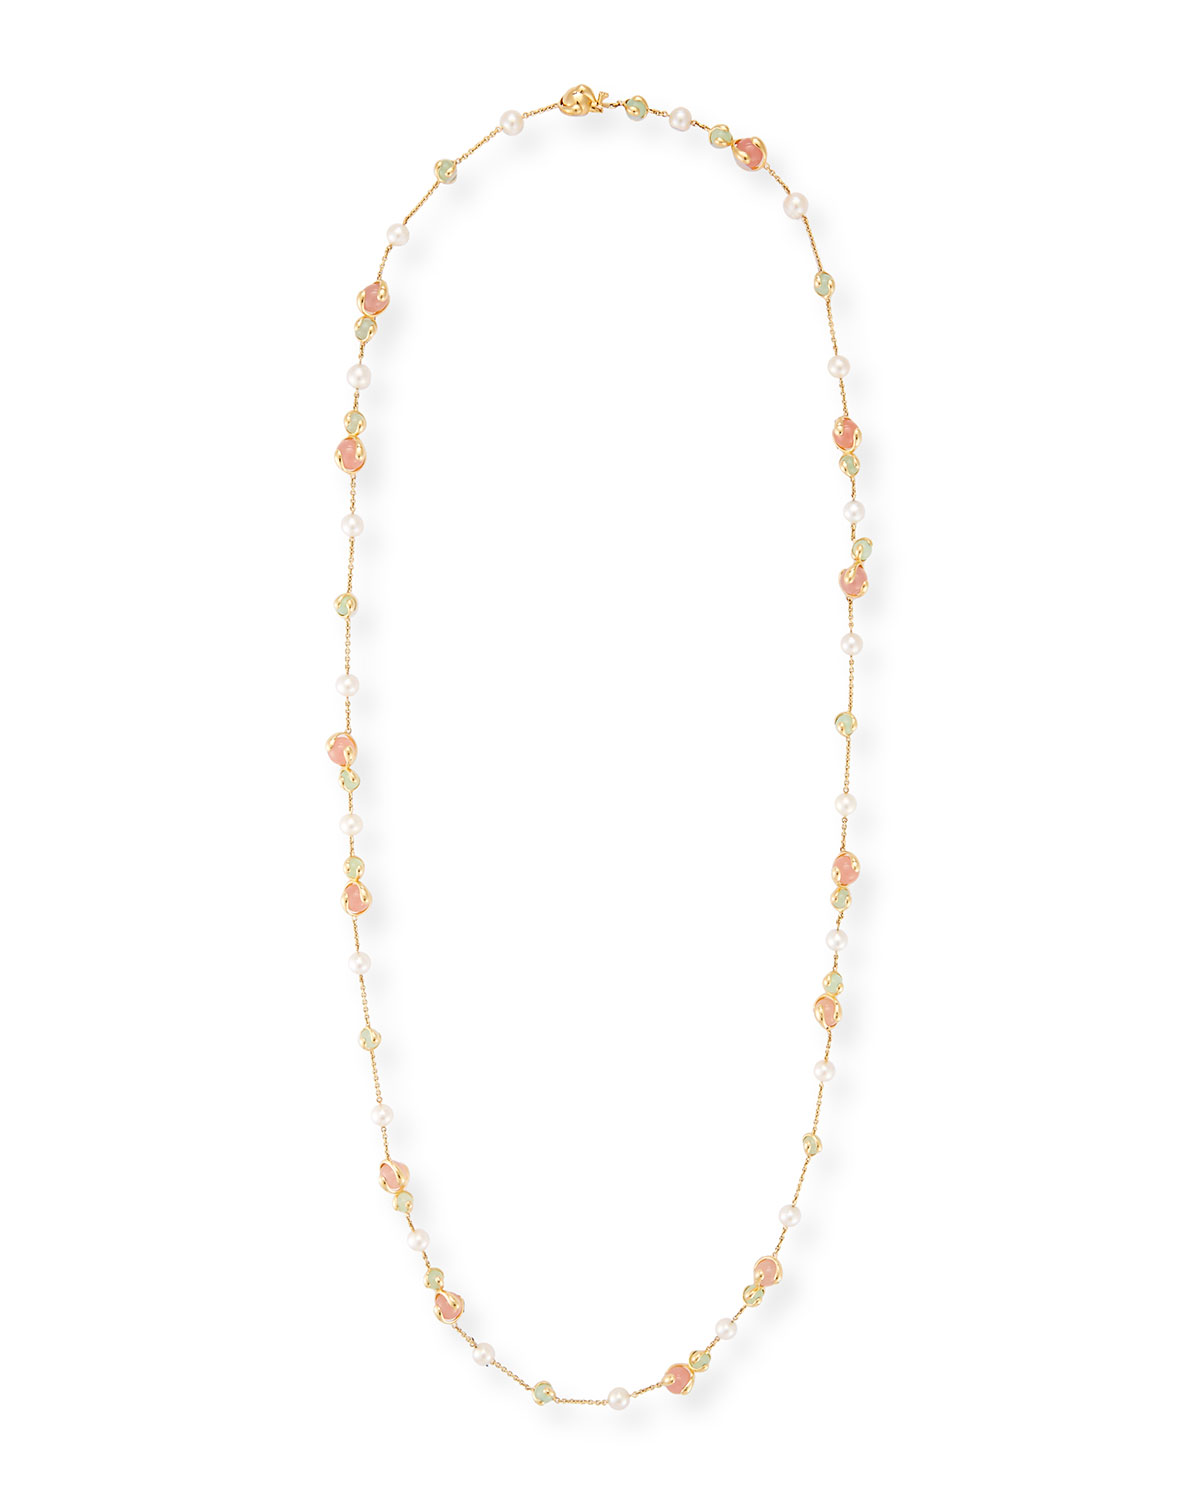 Chalcedony, Rose Quartz & Pearl Necklace, 42